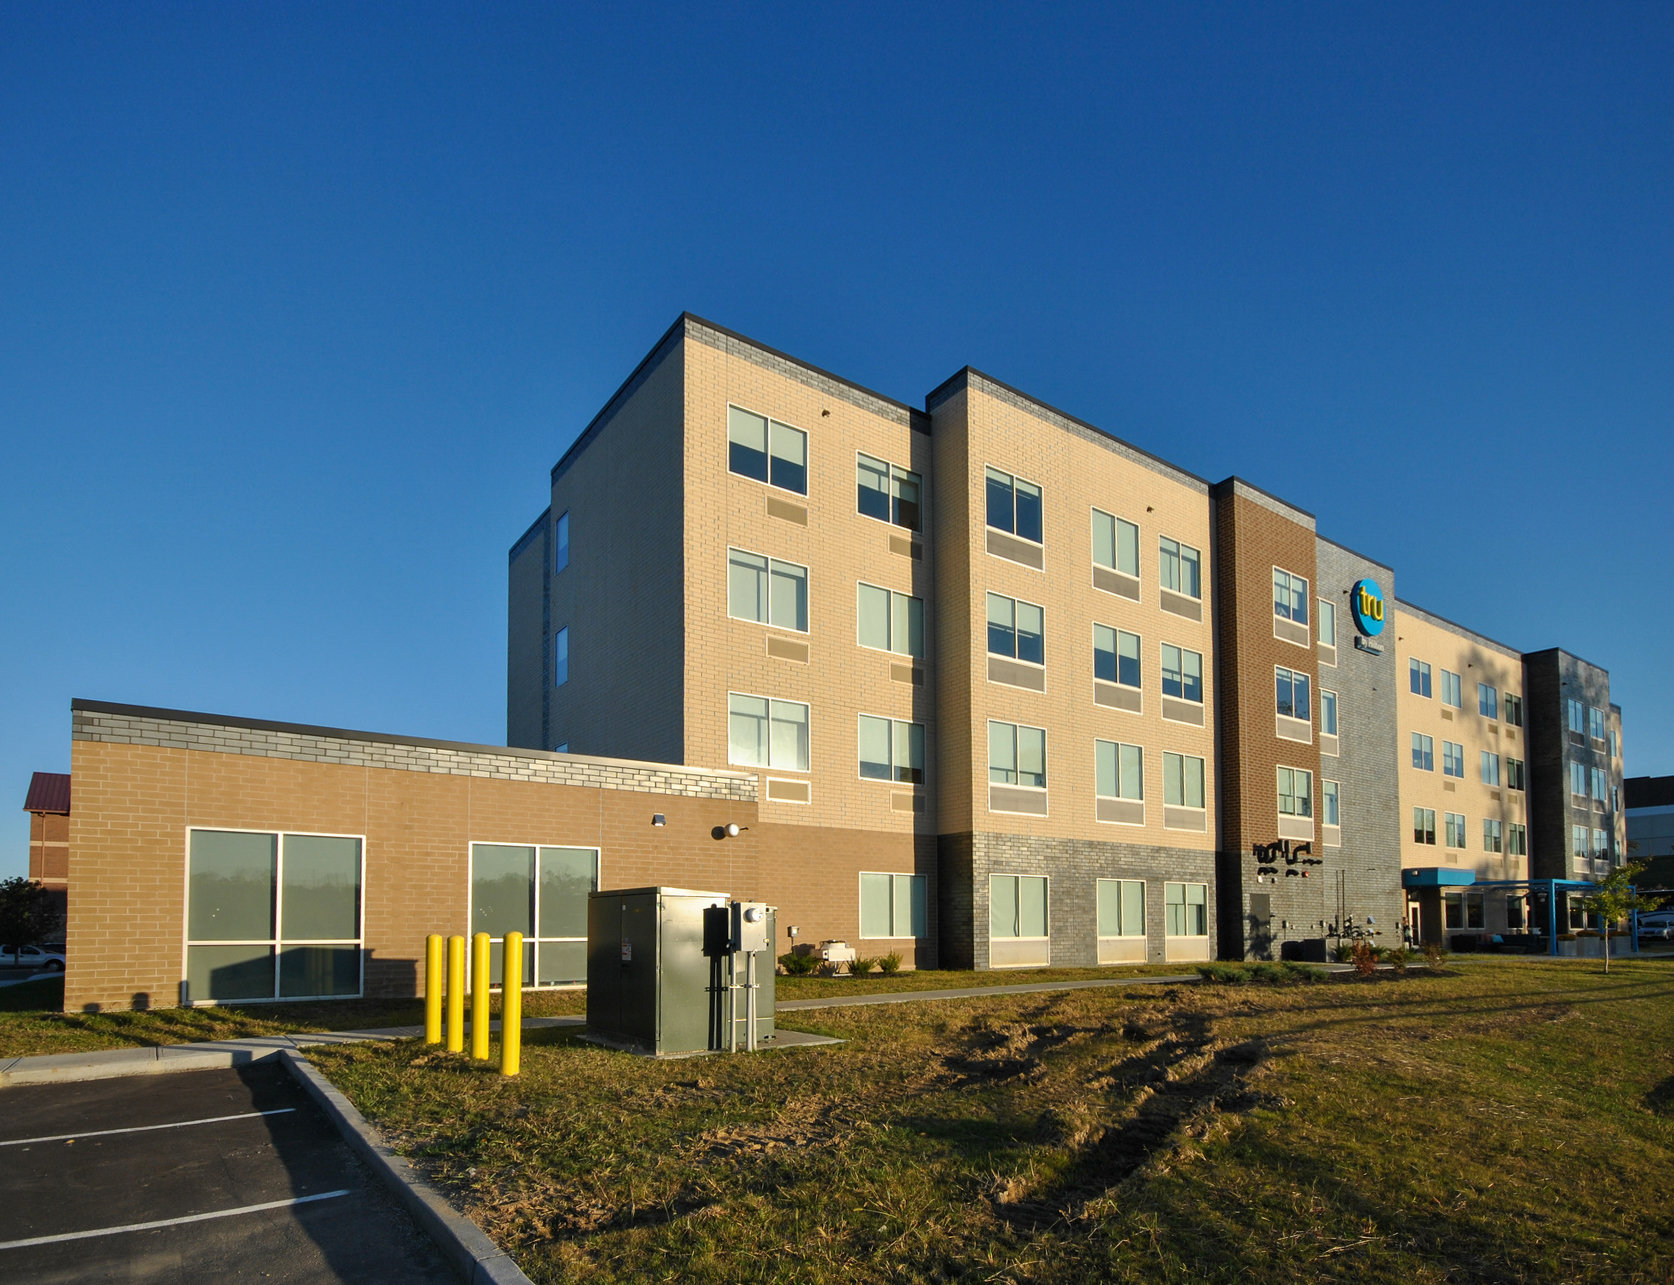 A clean and earth-toned colored exterior finish at Hilton Tru Hotel featuring the Speedymason Brick Lath.